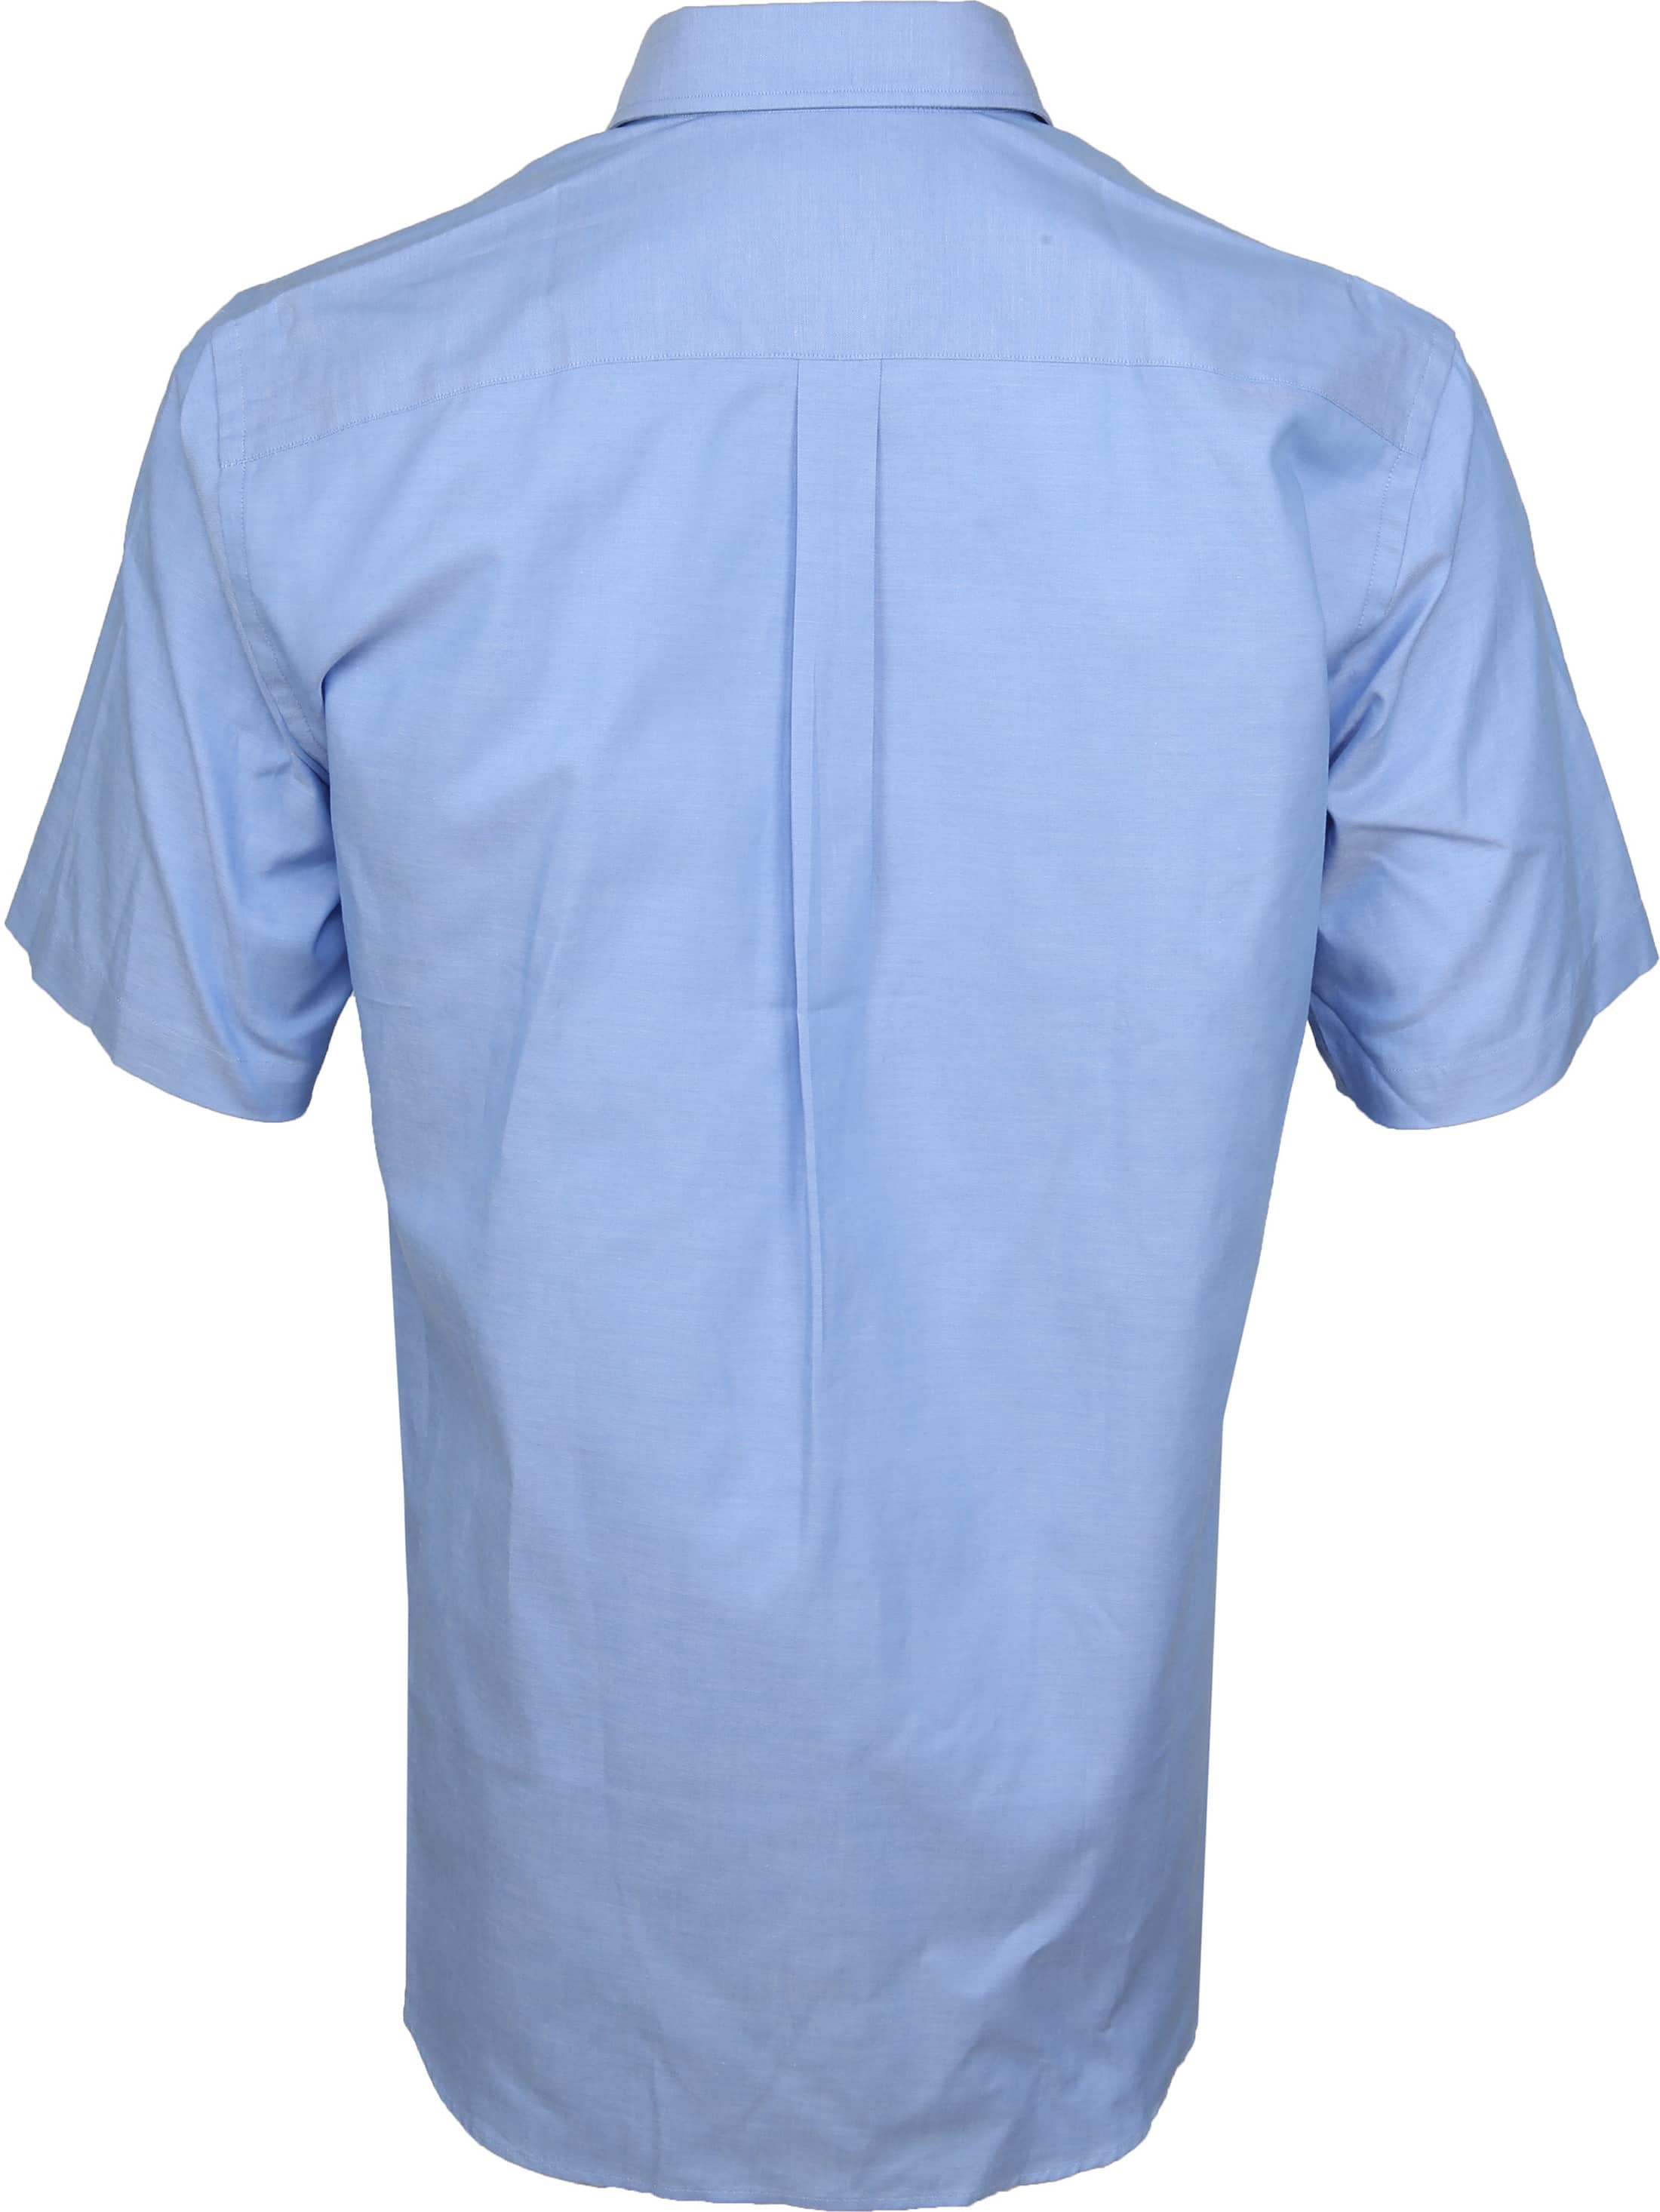 Suitable Shirt Wolf Light Blue foto 3